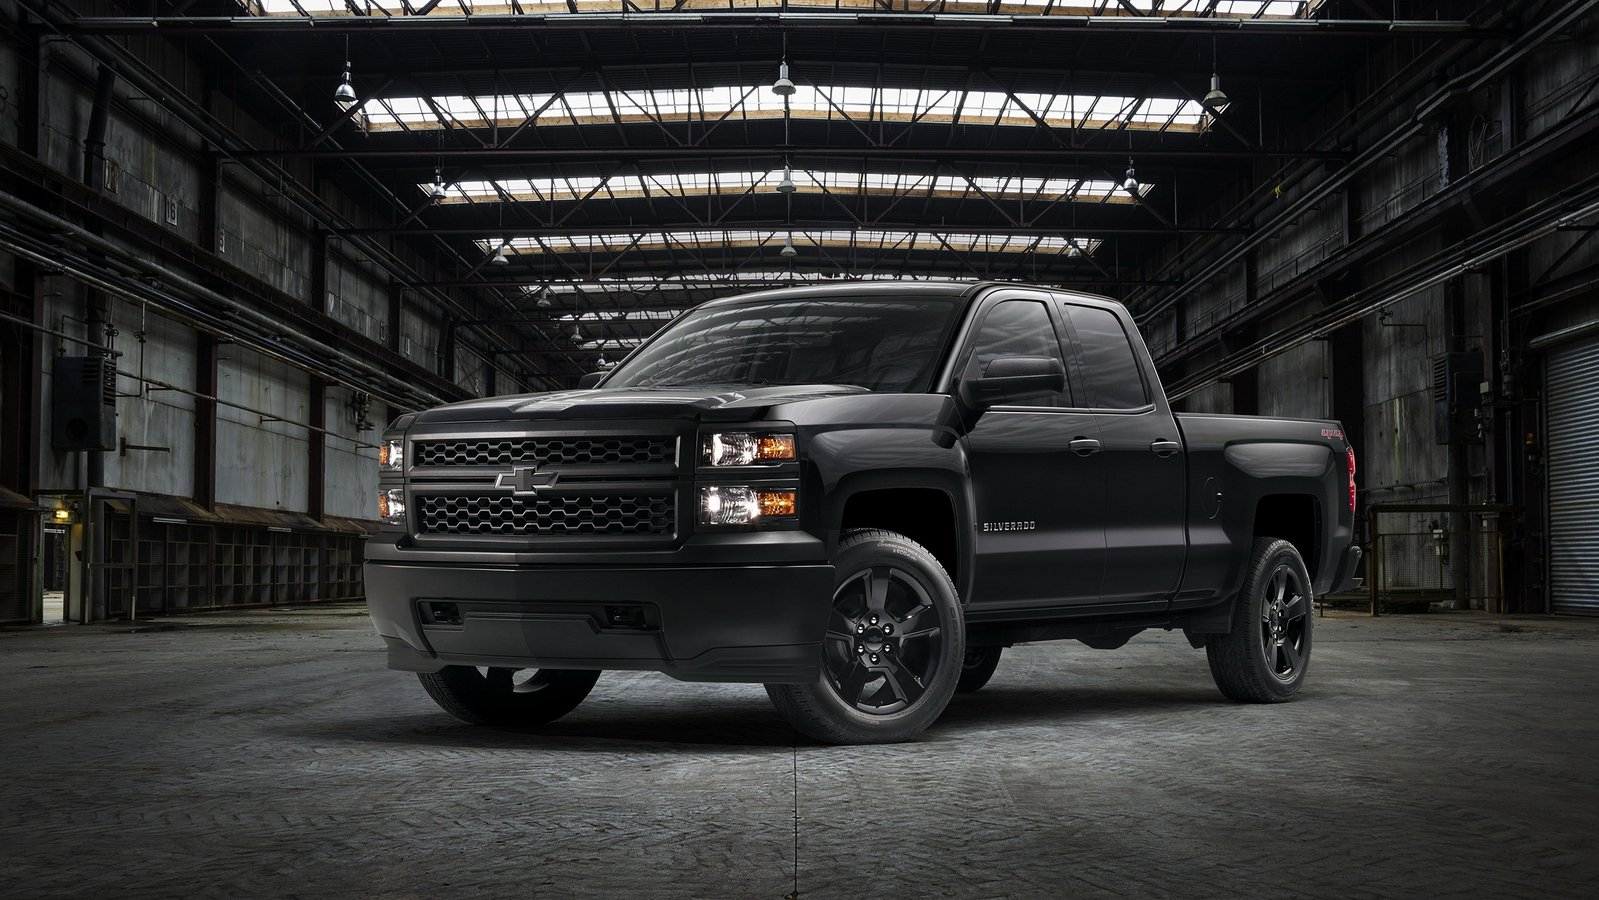 2015 chevrolet silverado black out special edition picture 618298 truck review top speed. Black Bedroom Furniture Sets. Home Design Ideas